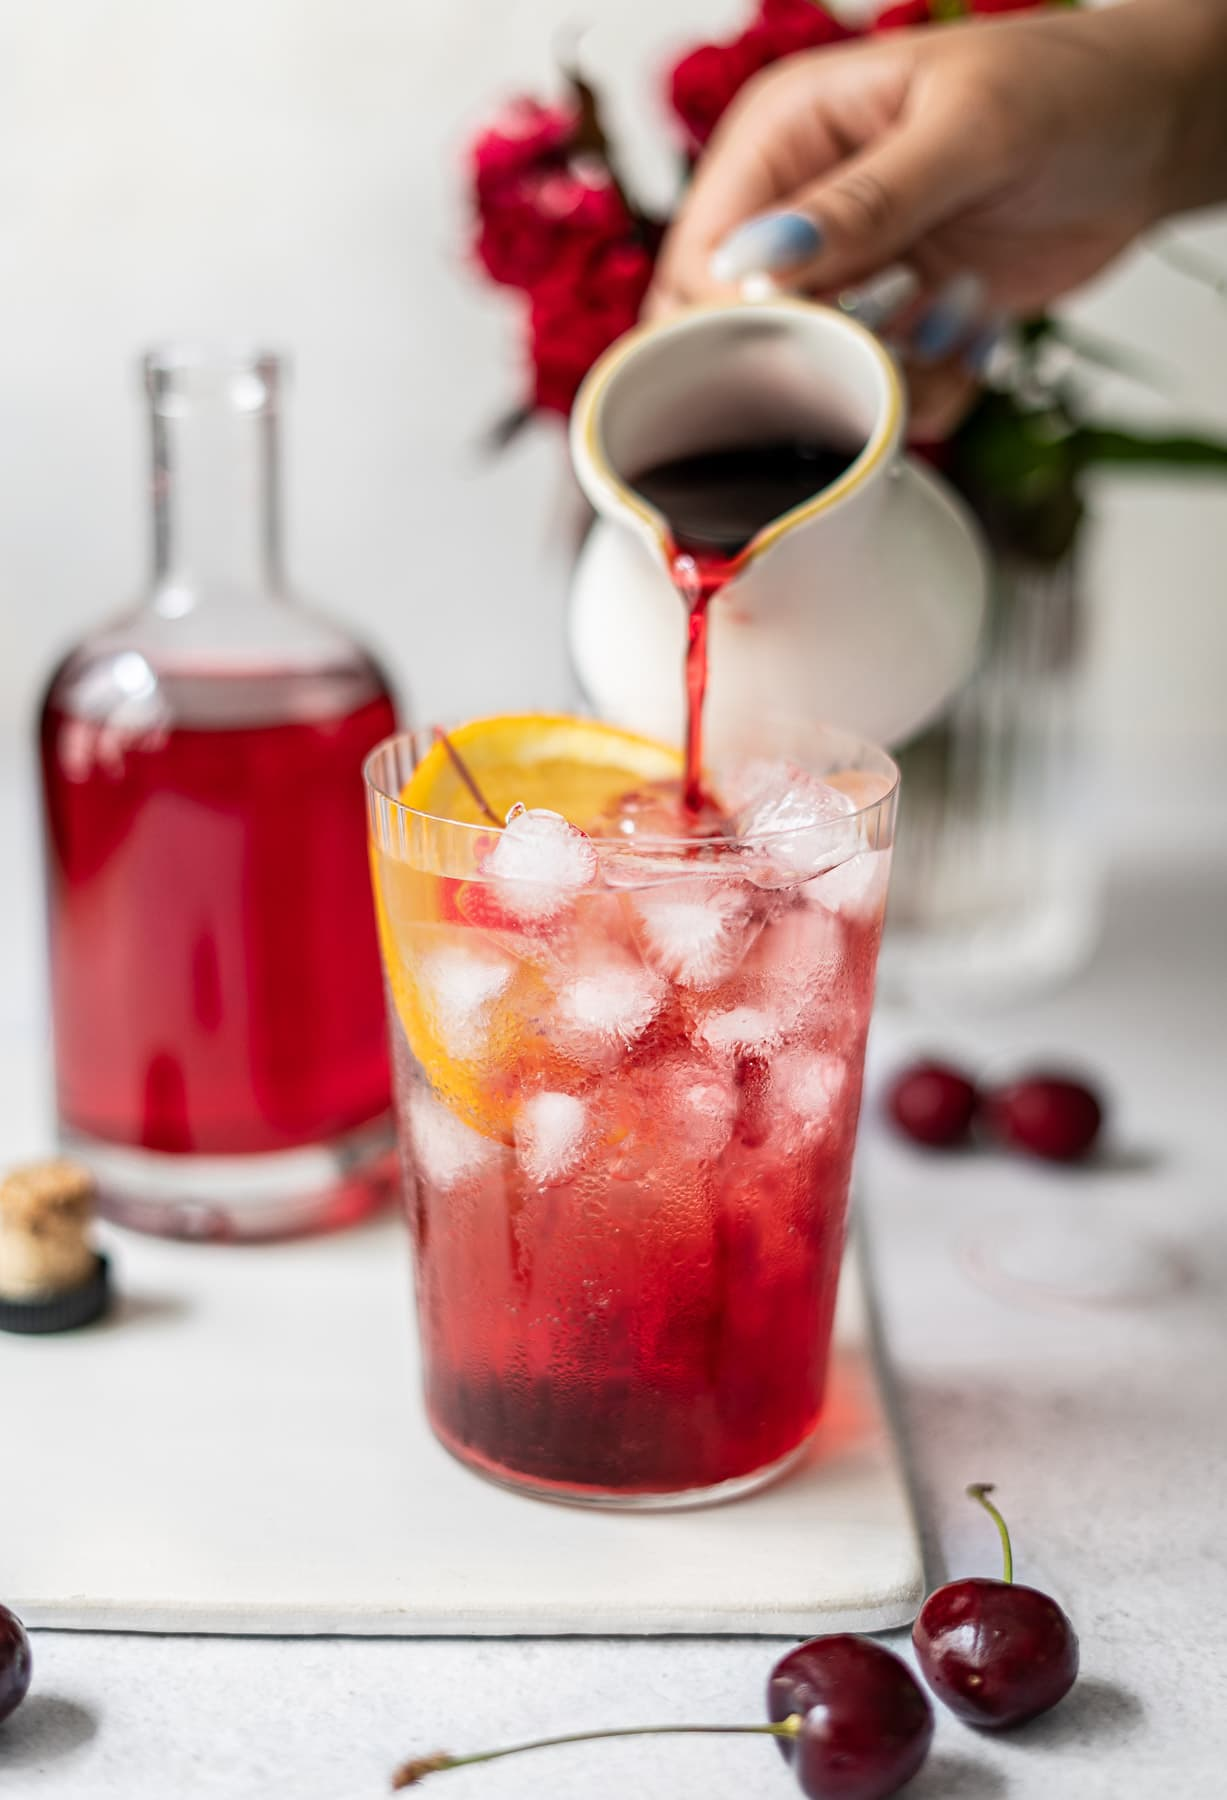 pouring homemade grenadine into a cup with an orange and ice